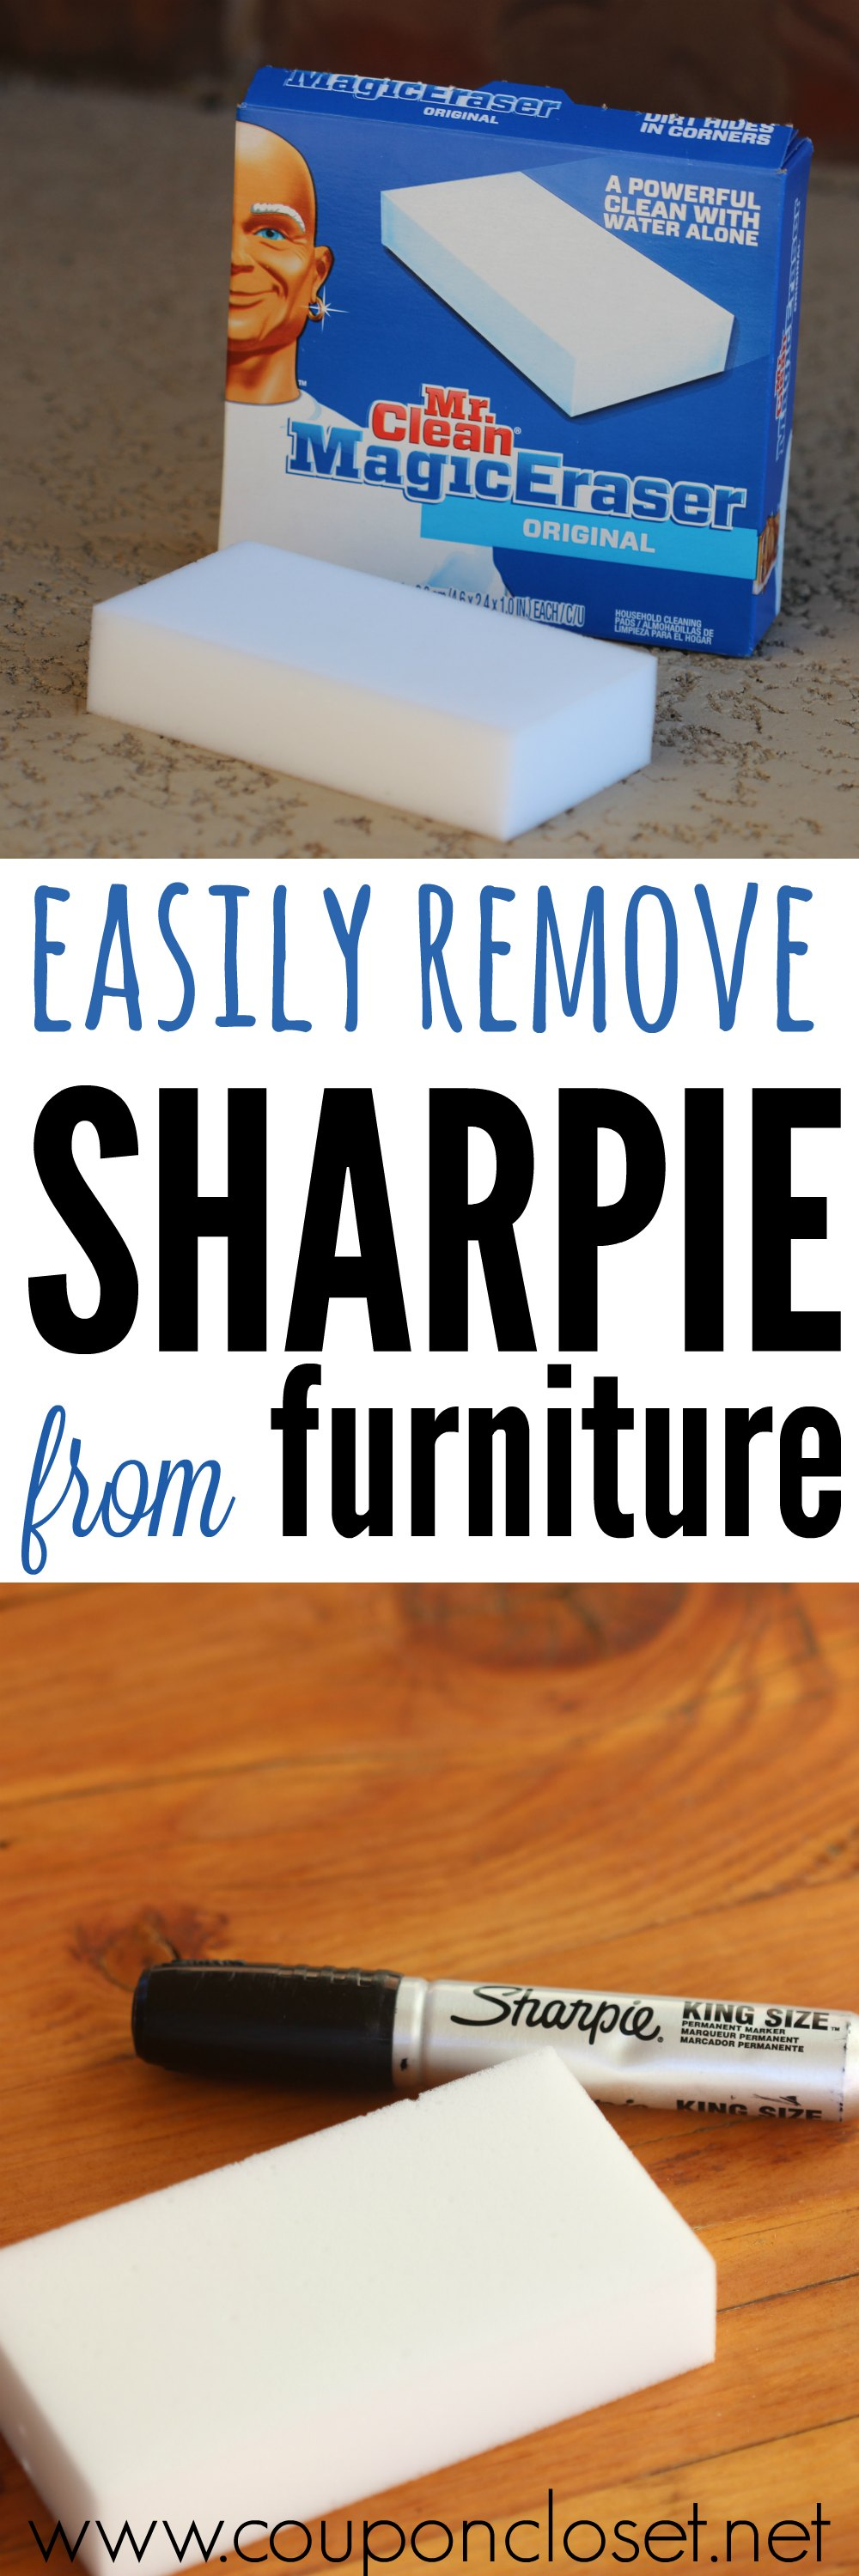 how to remove permanent marker from furniture - any sharpies